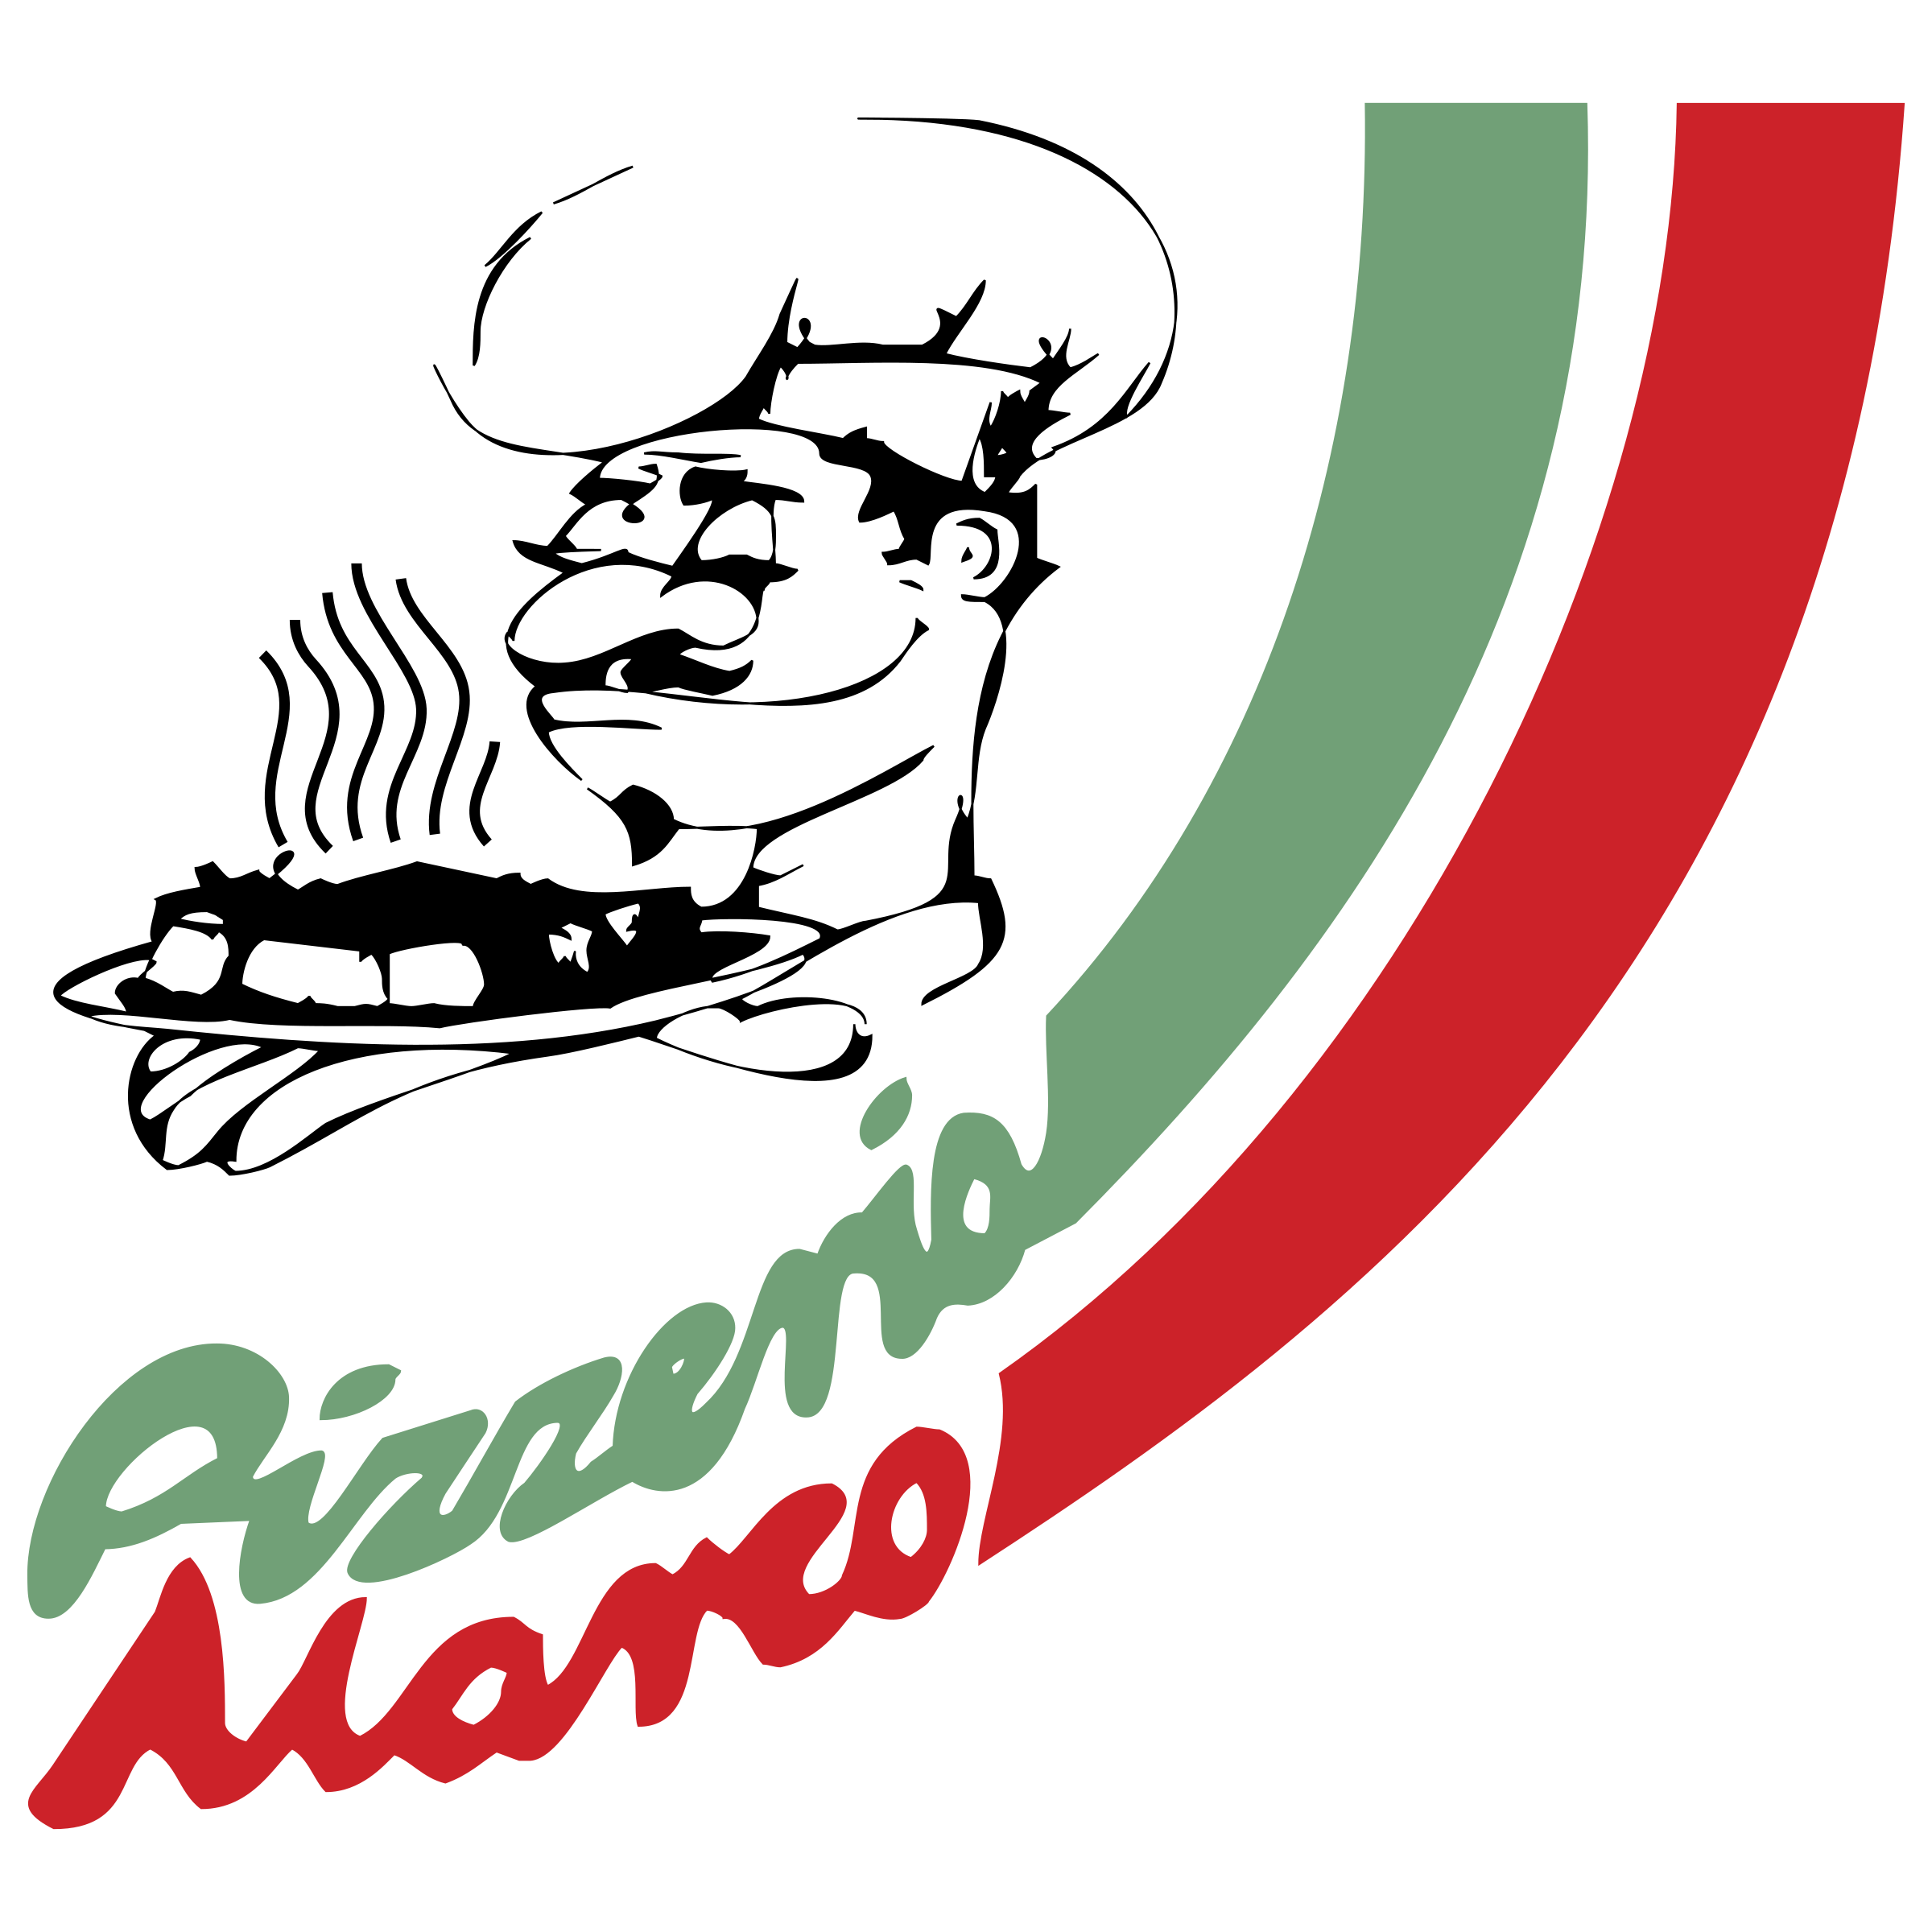 Marco Pizzeria Logo PNG Transparent & SVG Vector - Freebie Supply